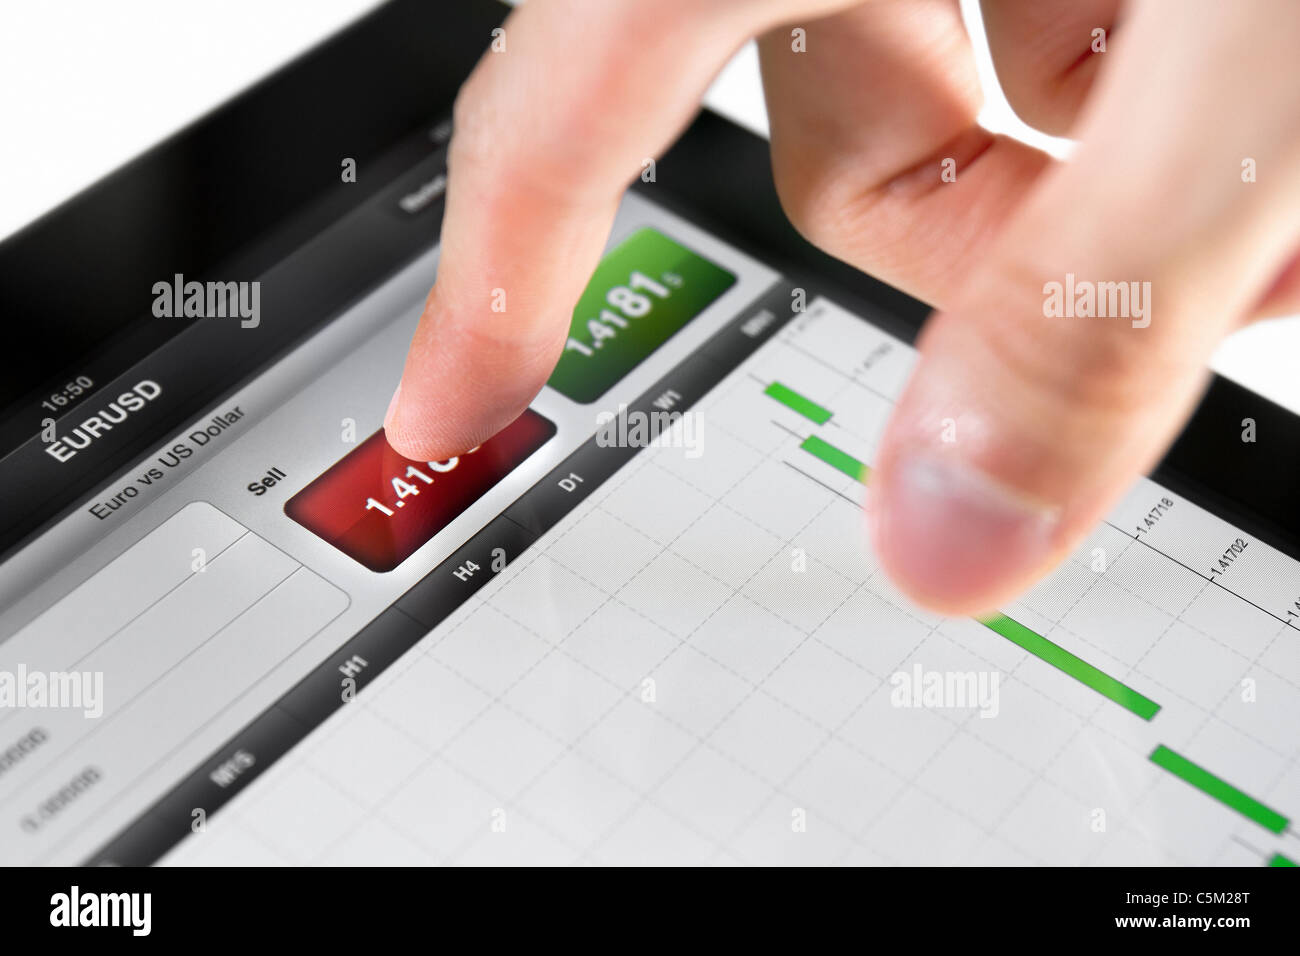 Touching sell button on stock market EUR/USD pair on a touch screen device. - Stock Image